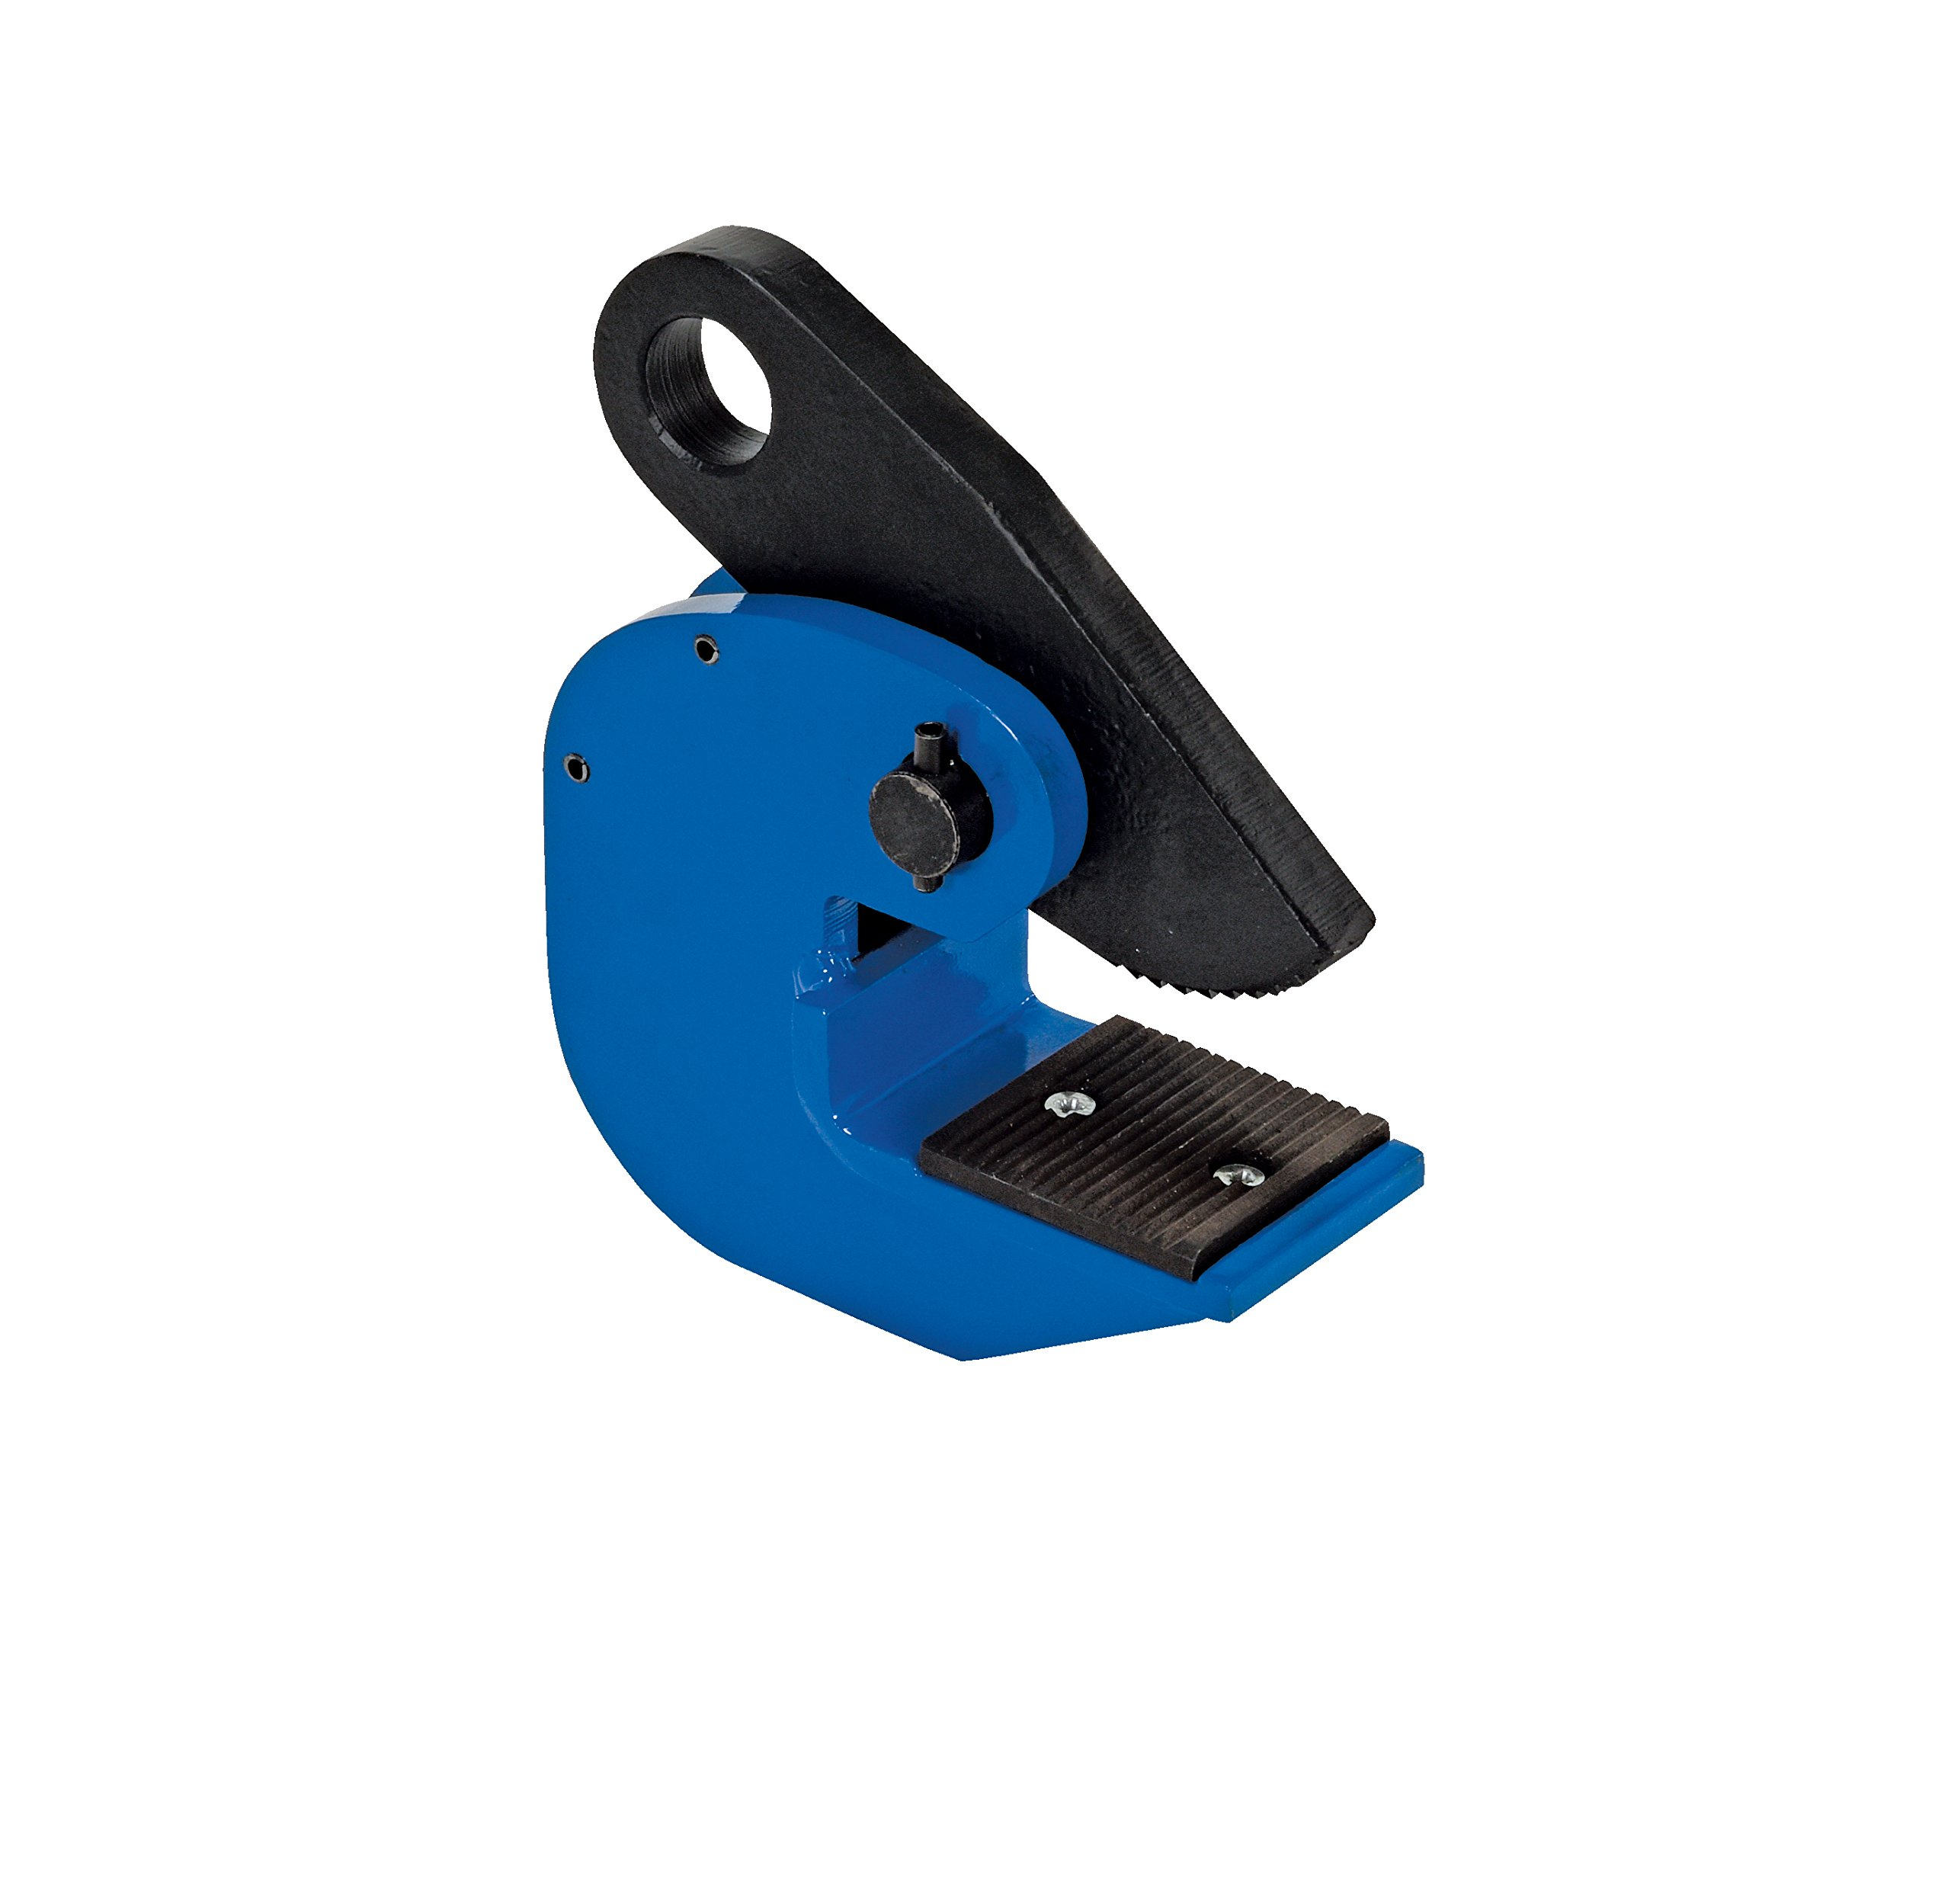 Vestil HPC-40 Horizontal Plate Lifting Clamp, Steel, 1-1/4'' Plate Thickness, 4000 lbs Working Load Limit, 1.2'' Bale Opening